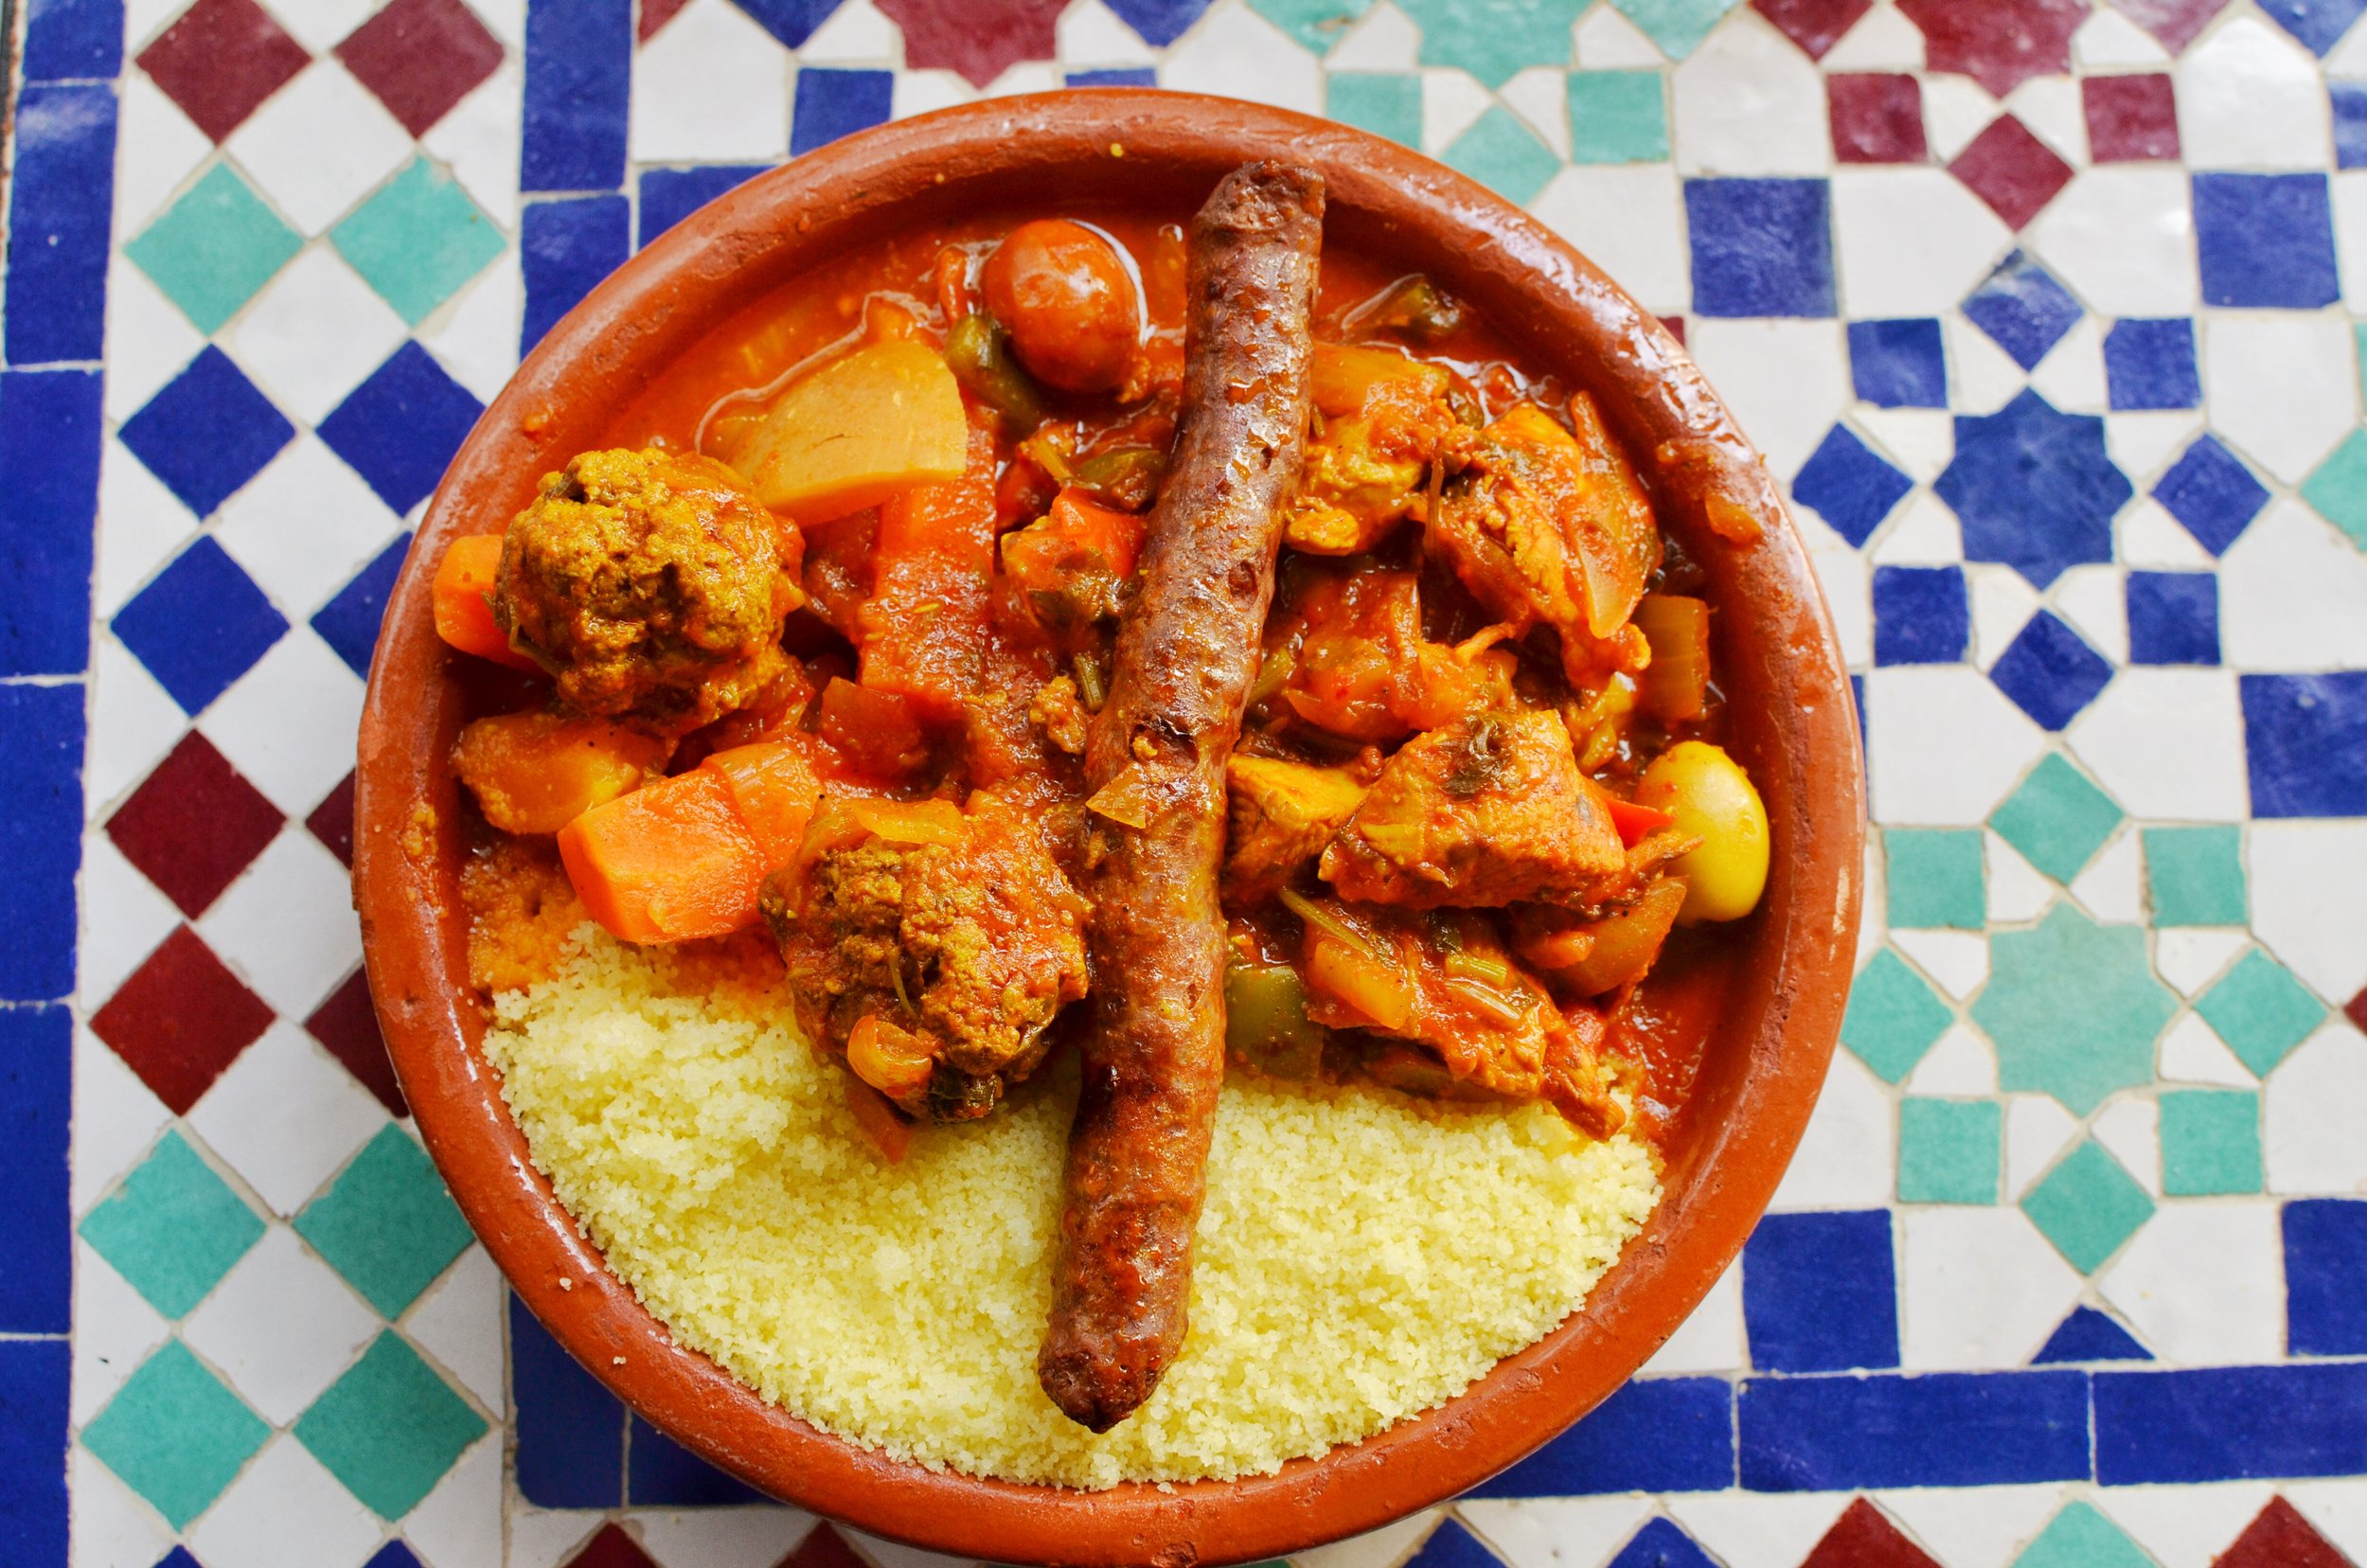 Chicken, kefta, beef tagine with couscous